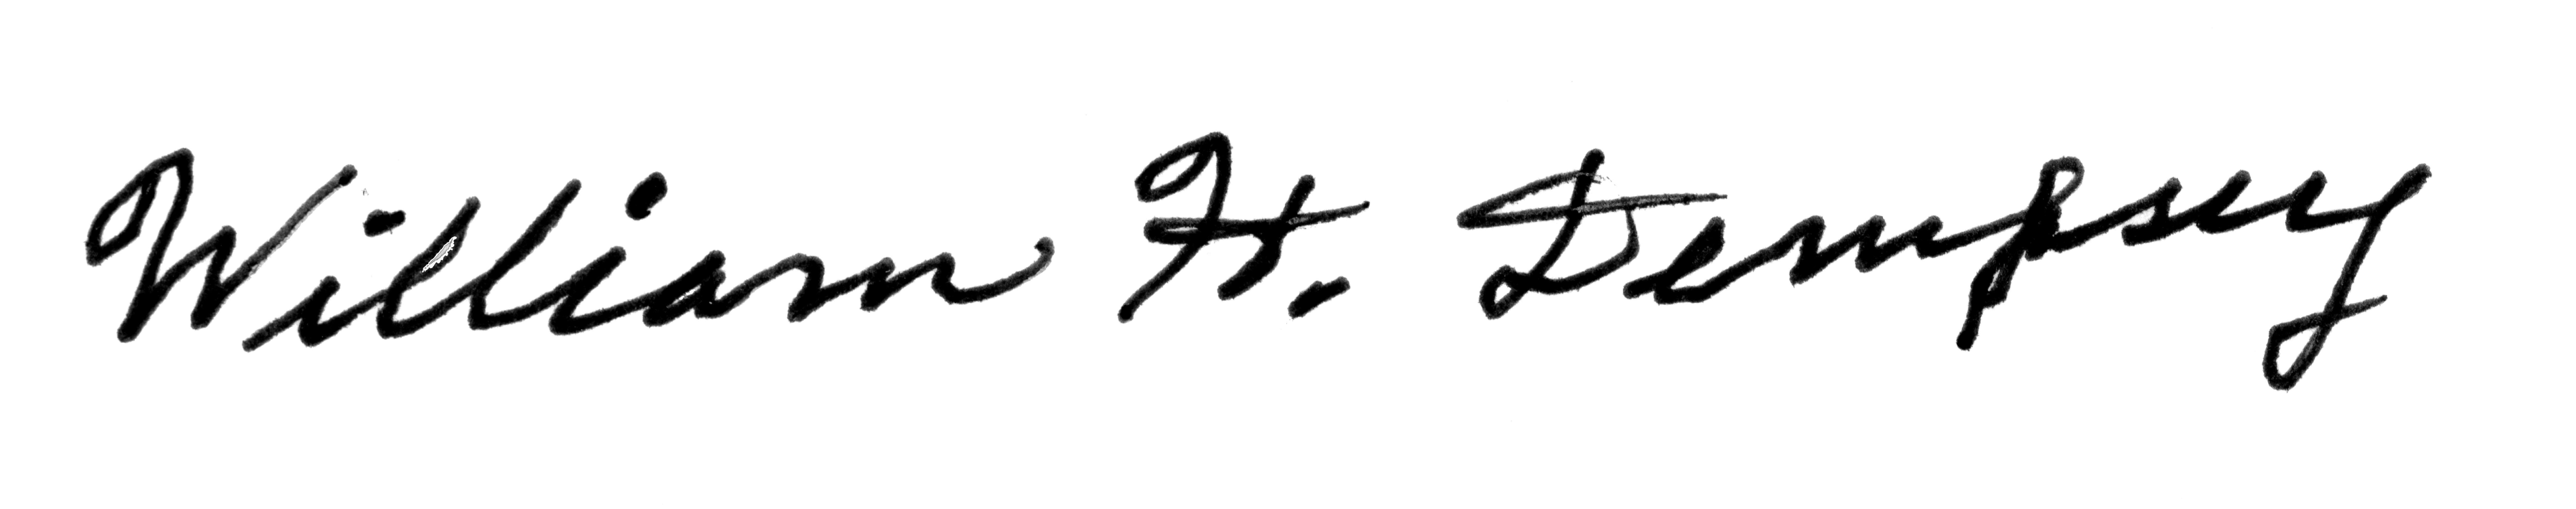 william_dempsey_signature